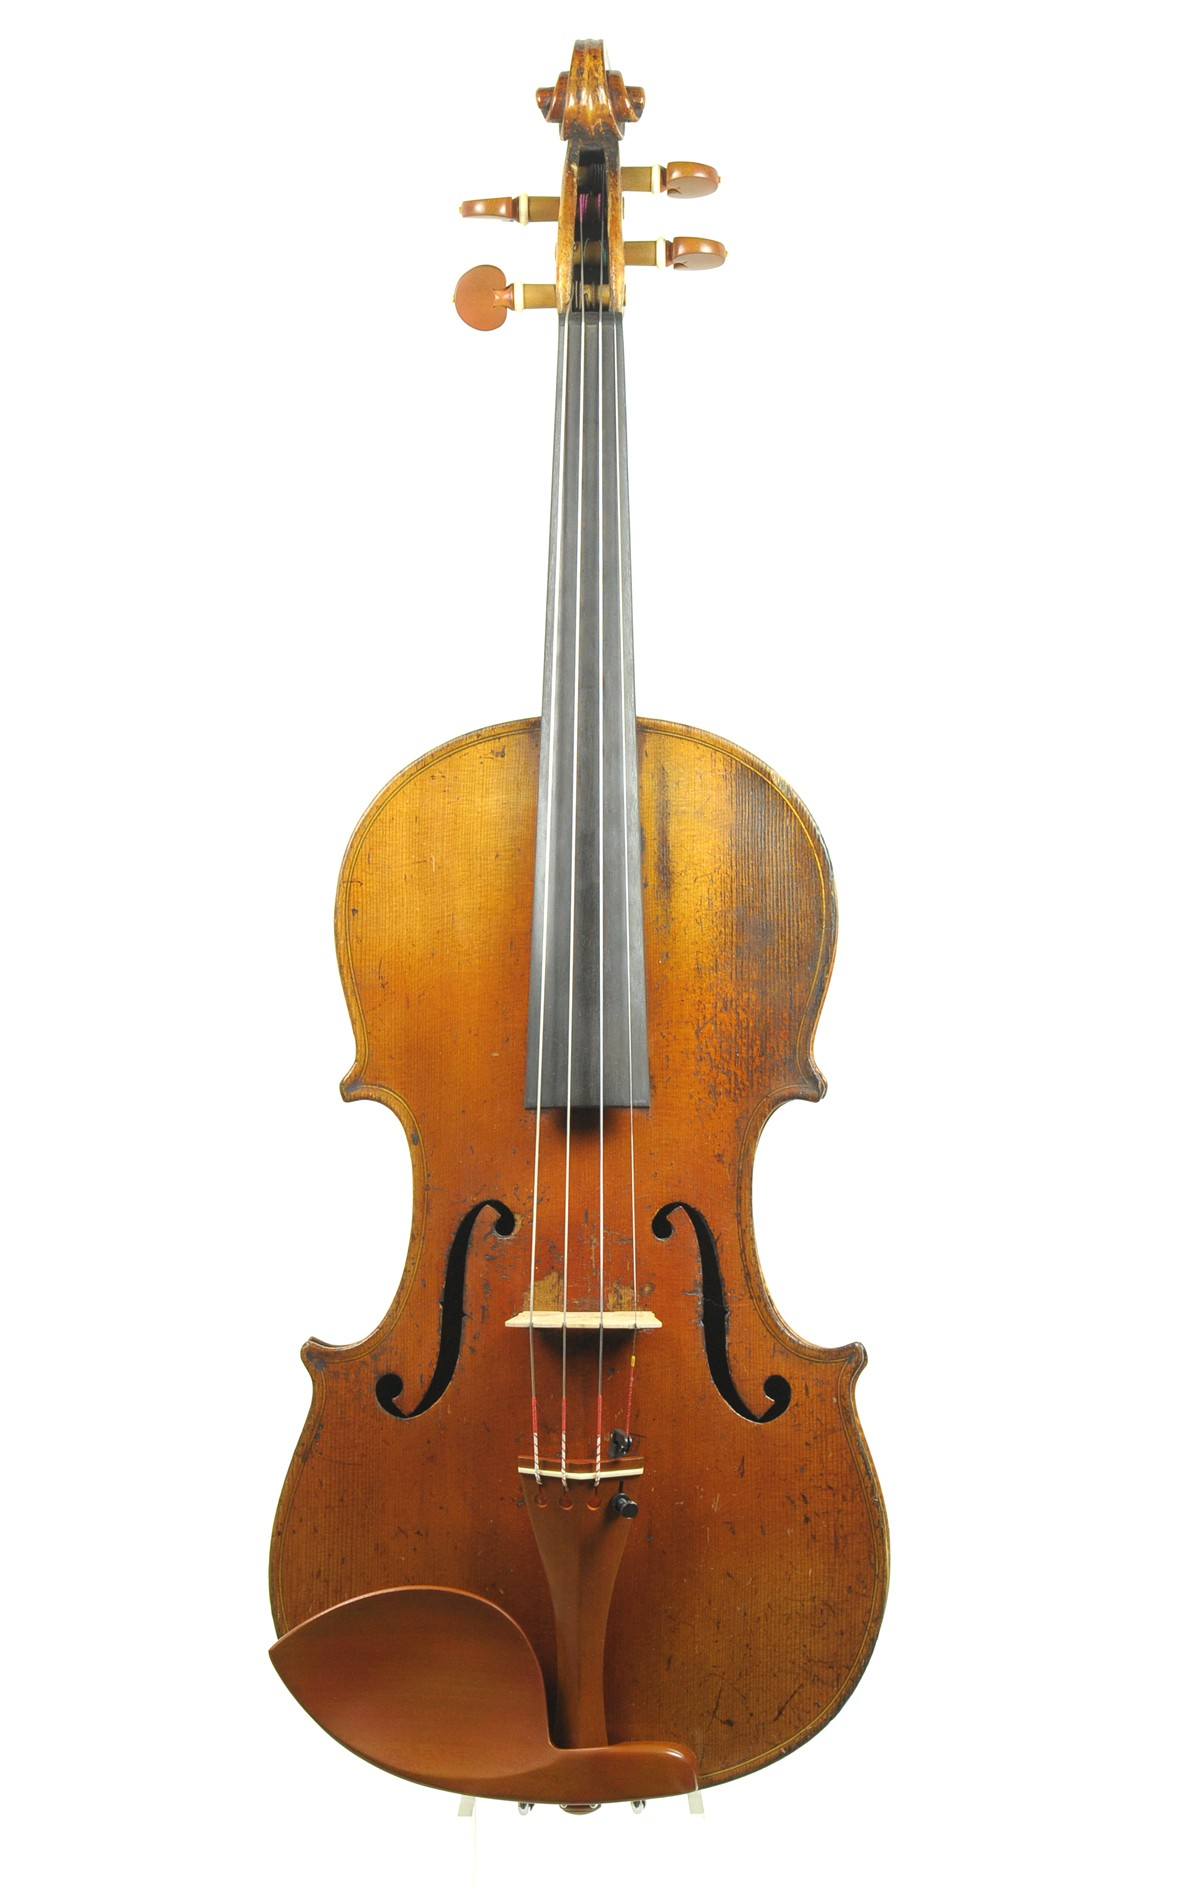 Antique German violin from Saxony, c.1880 - top